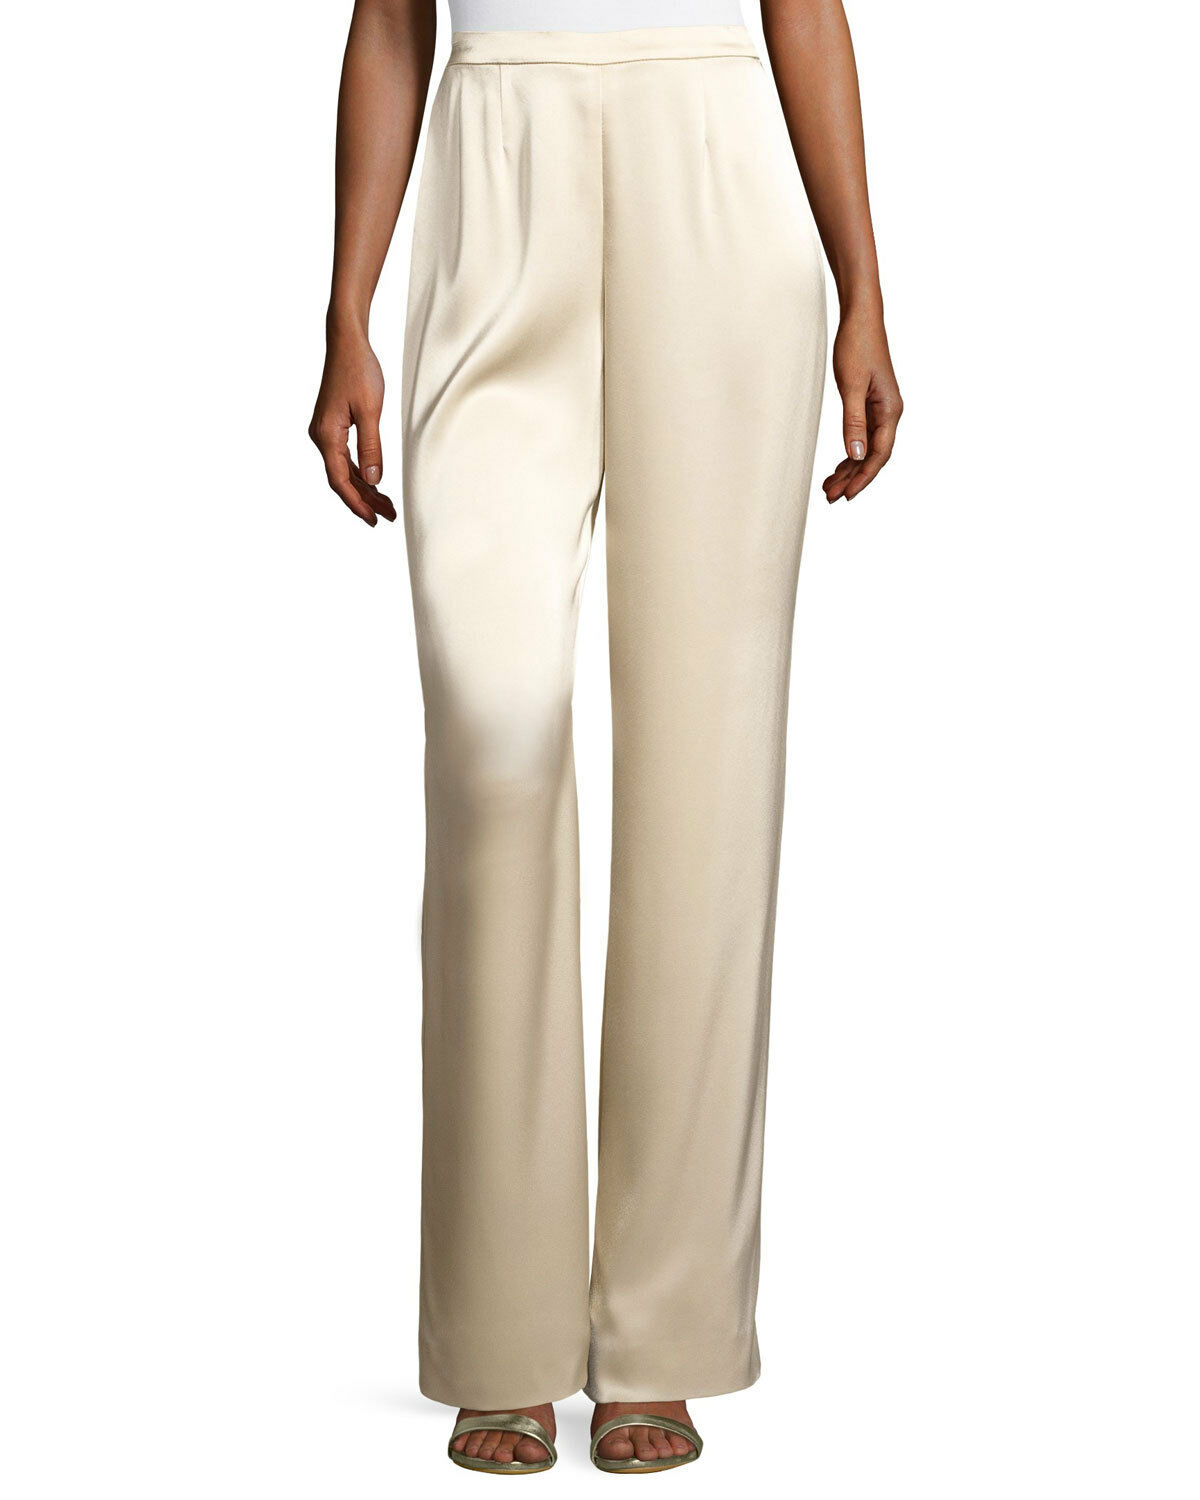 NEW ST. JOHN COUTURE 02 P CLASSIC BEIGE PANTS WIDE LEG SHINY CHAMPAGNE